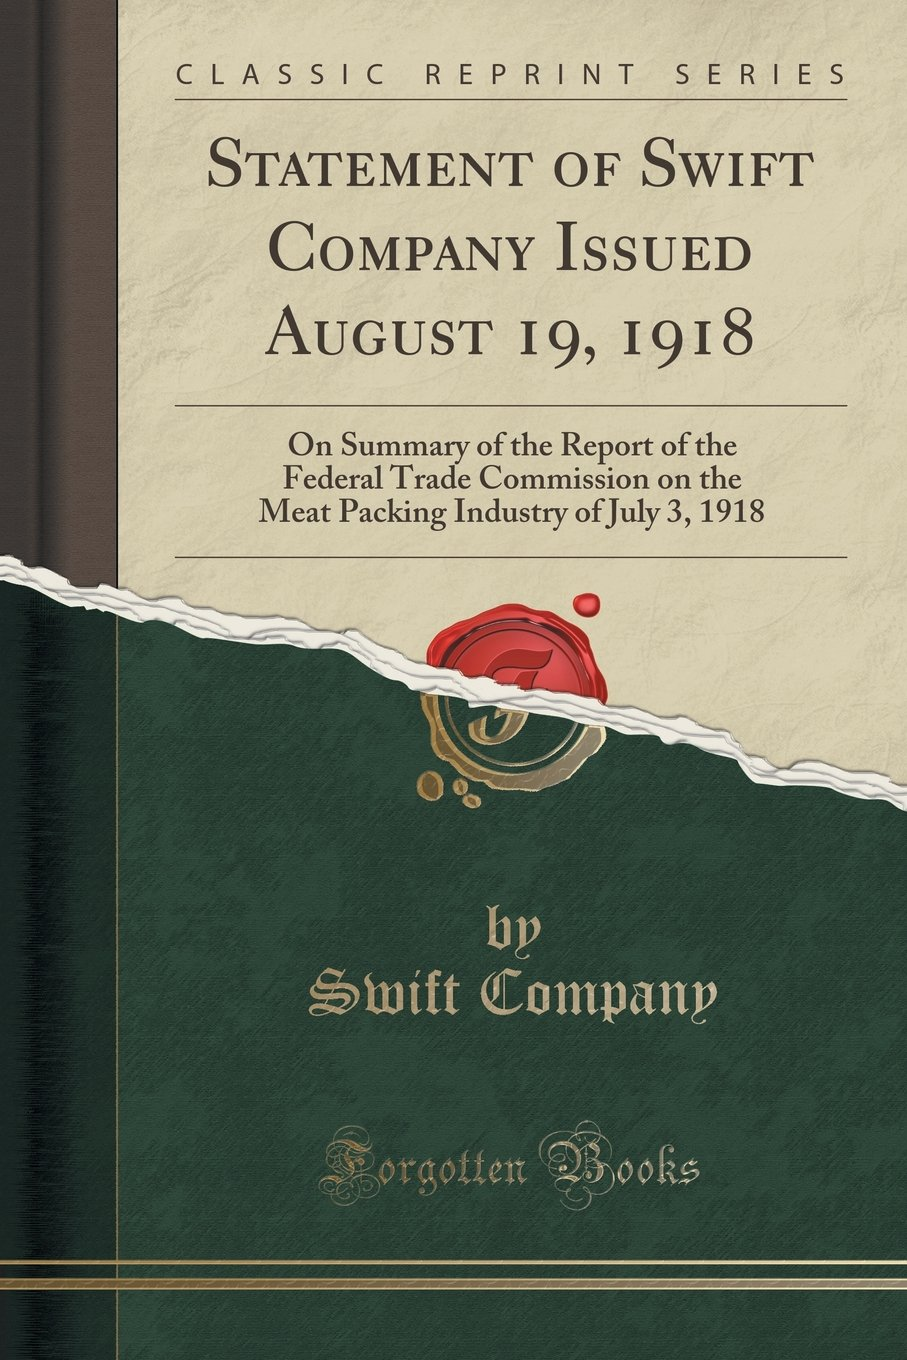 Statement of Swift Company Issued August 19, 1918: On Summary of the Report of the Federal Trade Commission on the Meat Packing Industry of July 3, 1918 (Classic Reprint) Text fb2 ebook